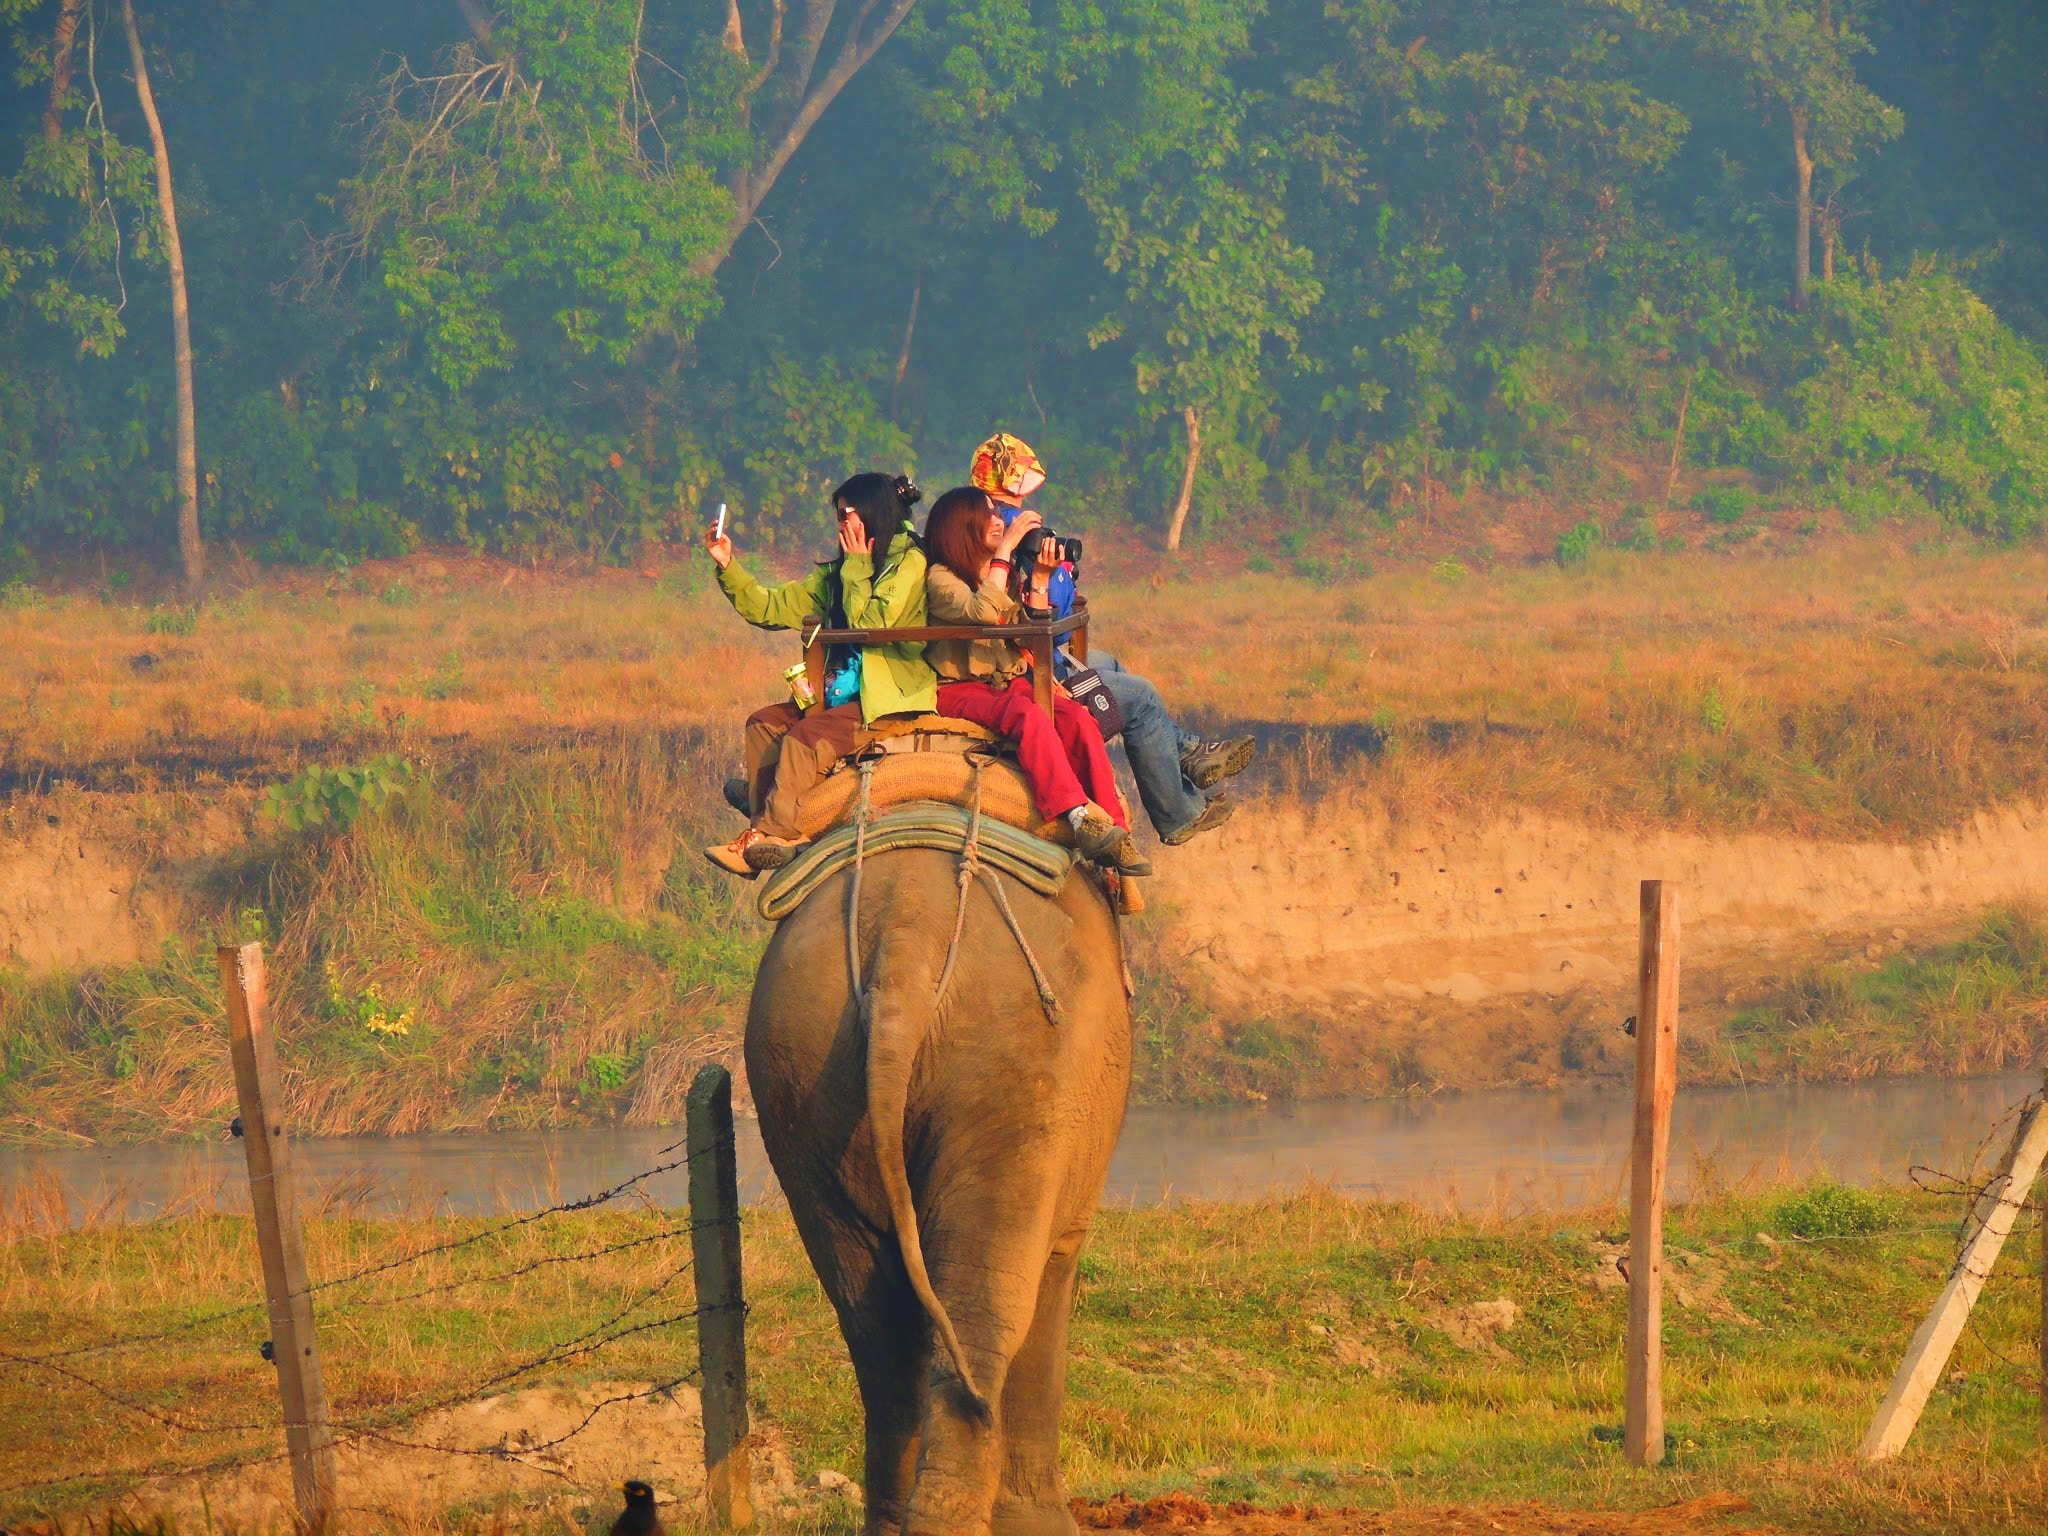 Chitwan Jungle Safari, Elephant Safari, Chitwan Jungle Safari, Elephant Safari in Chitwan National Park, Chitwan National Park, Elephant Riding